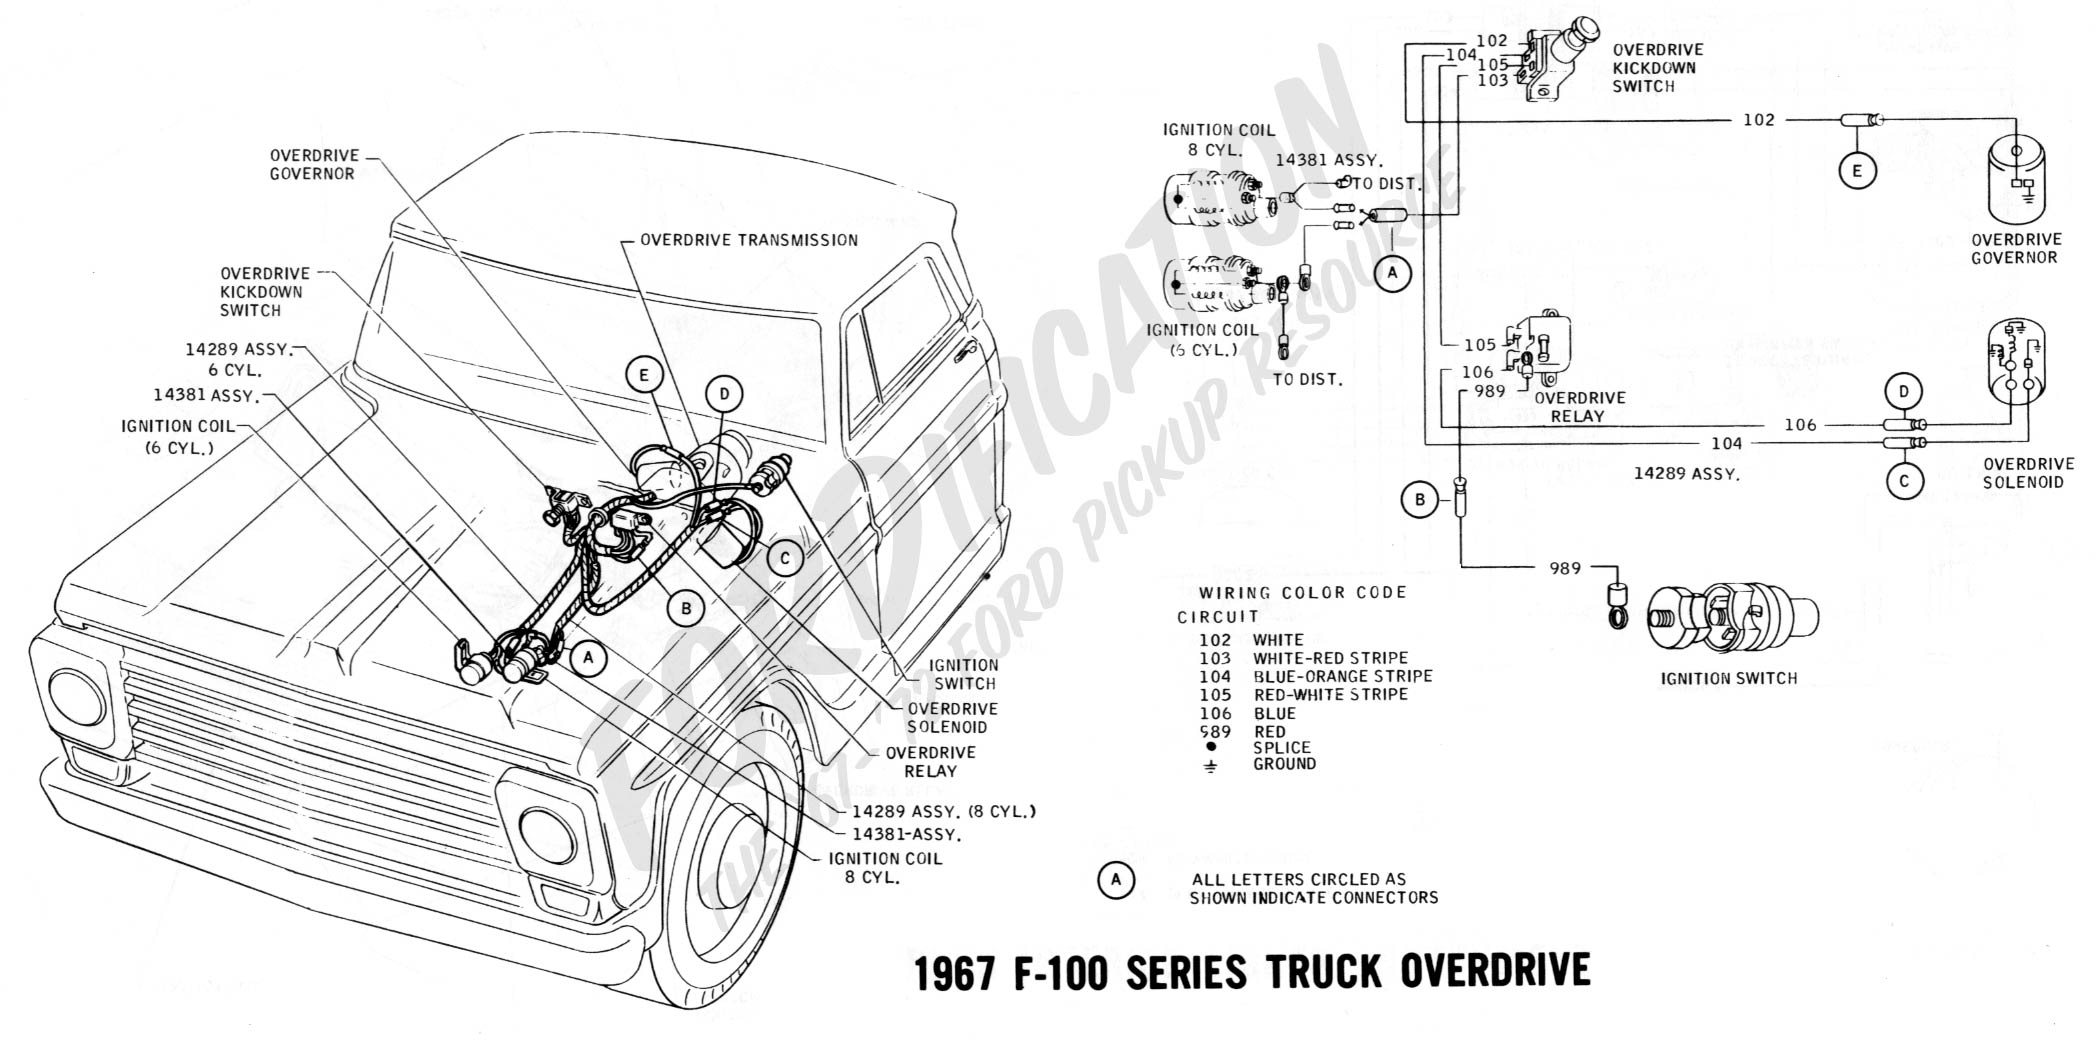 1968 Ford F 250 Alternator Wiring Diagram Just Another 85 Mustang Dist Simple Diagrams Rh 8 Zahnaerztin Carstens De Harness